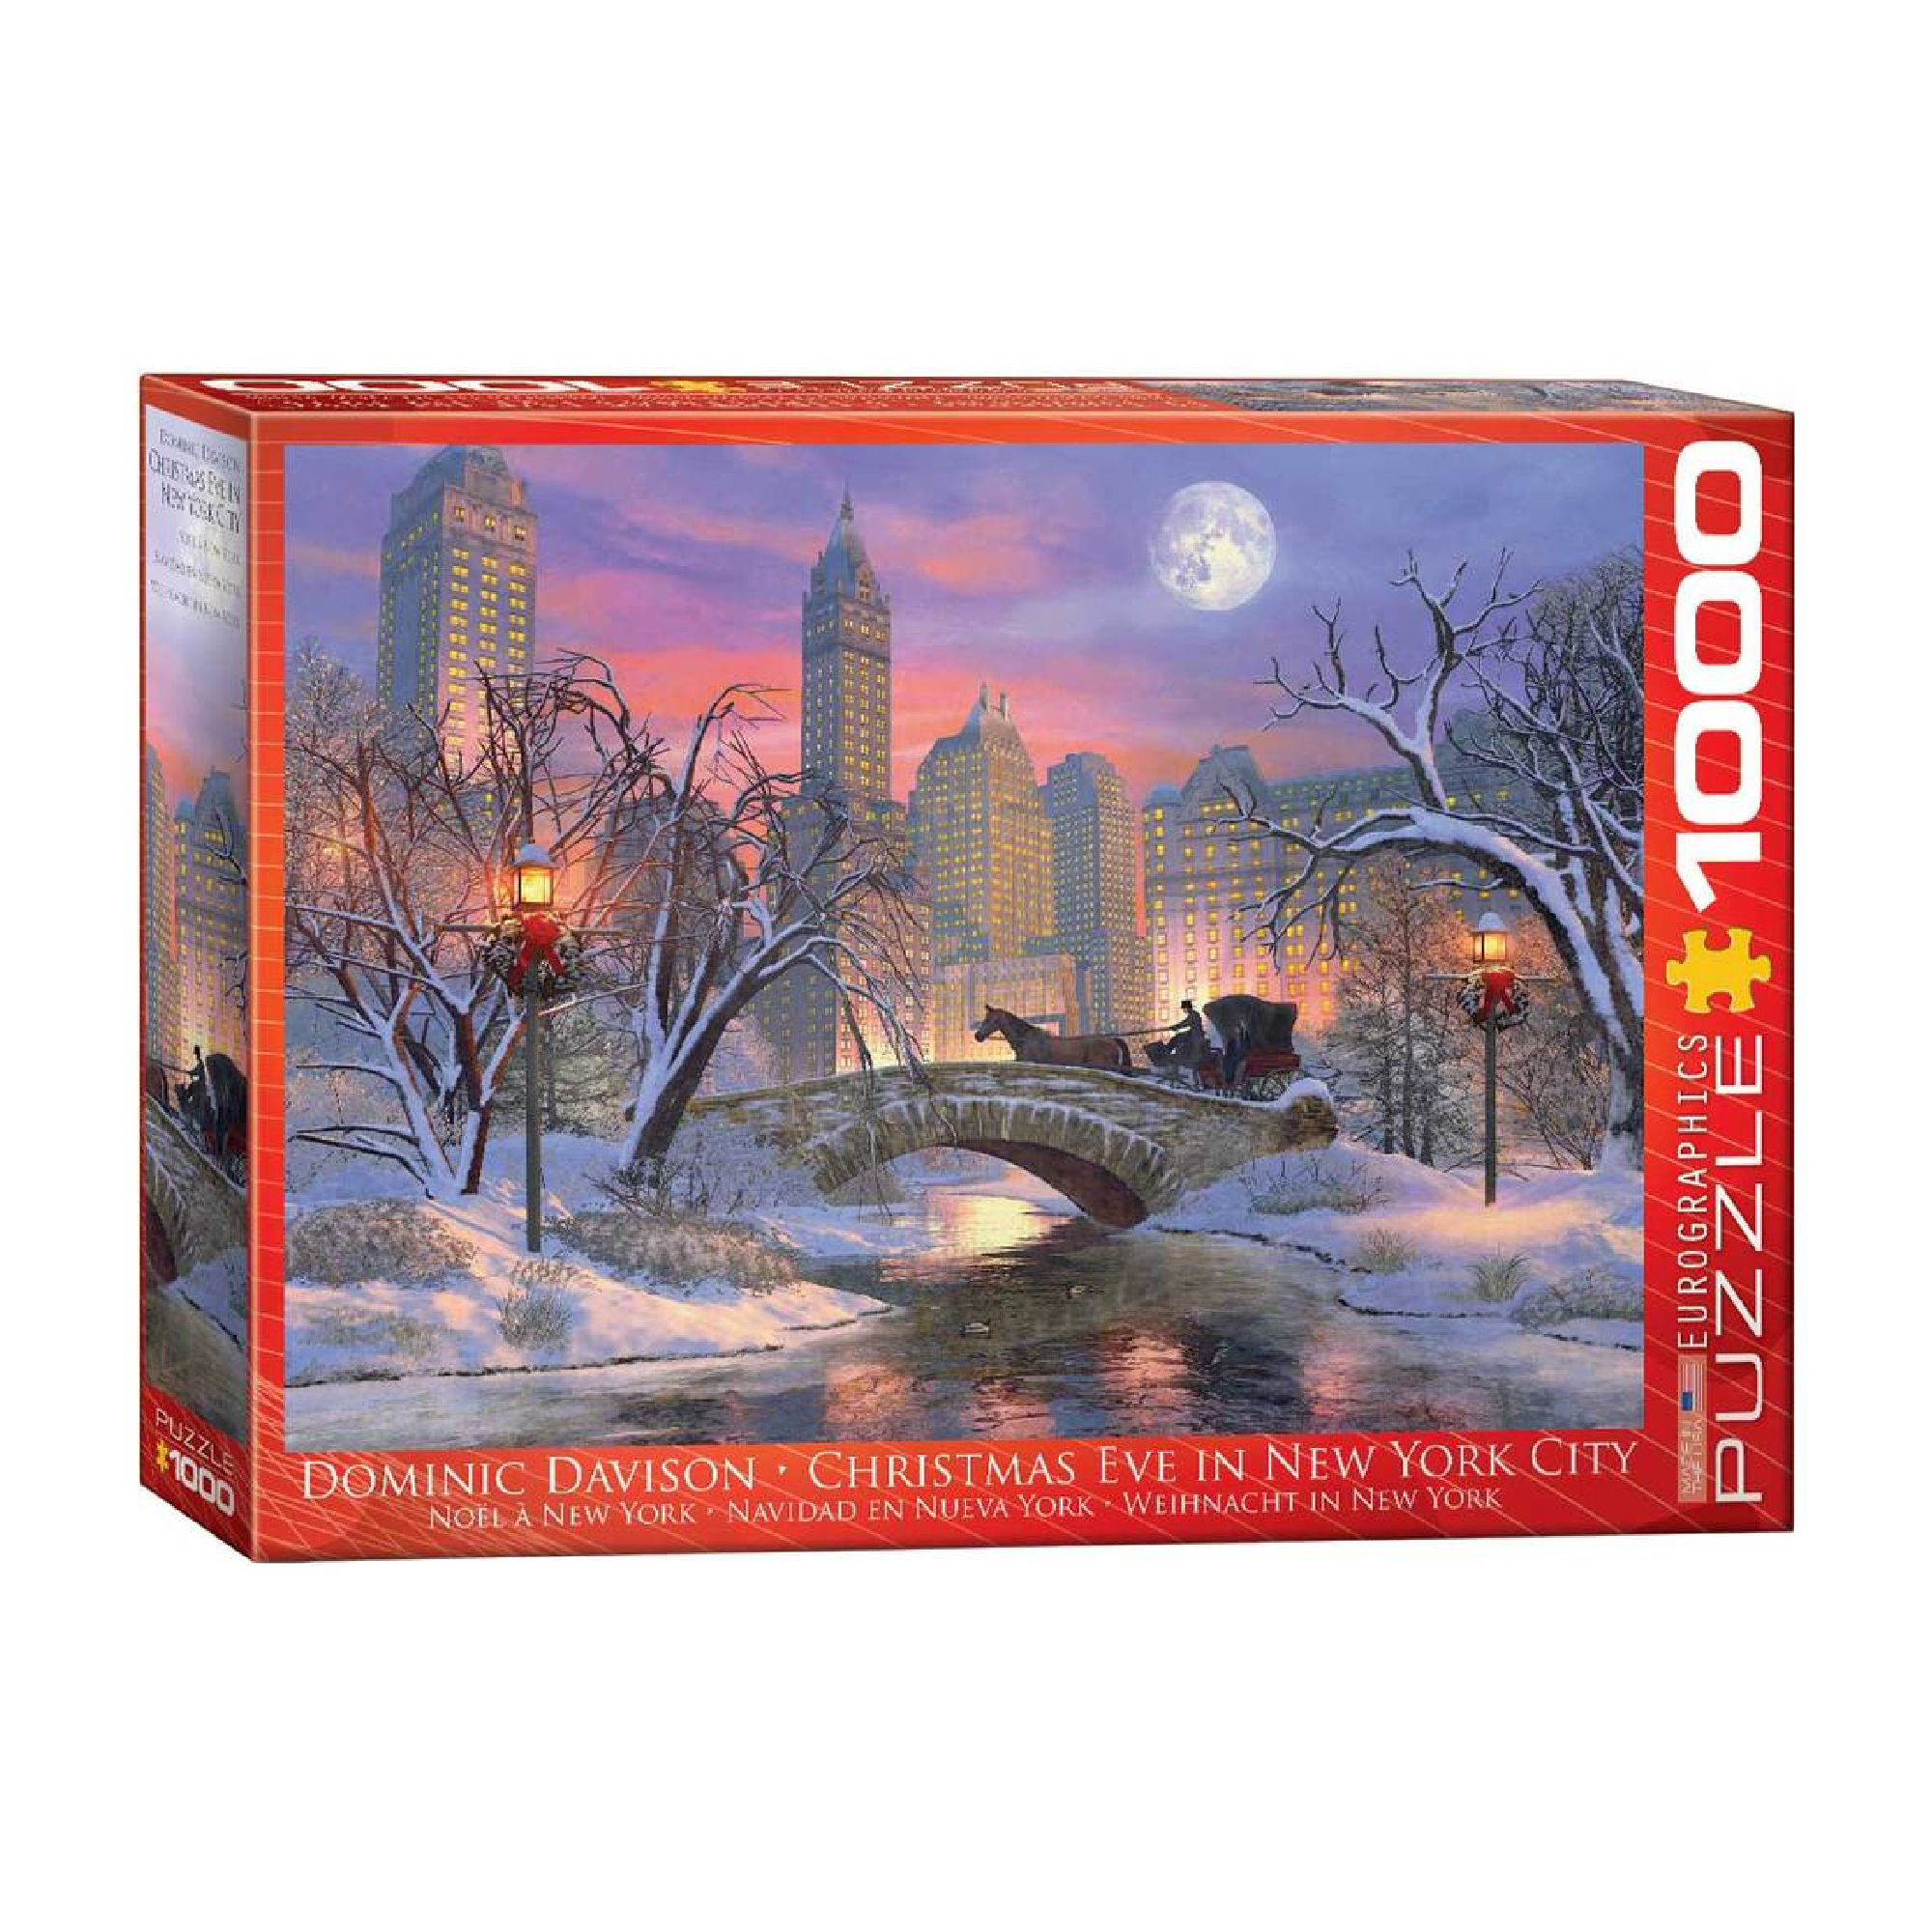 Eurographics Puzzle 1000: Christmas Eve in New York City by Dominic Davison